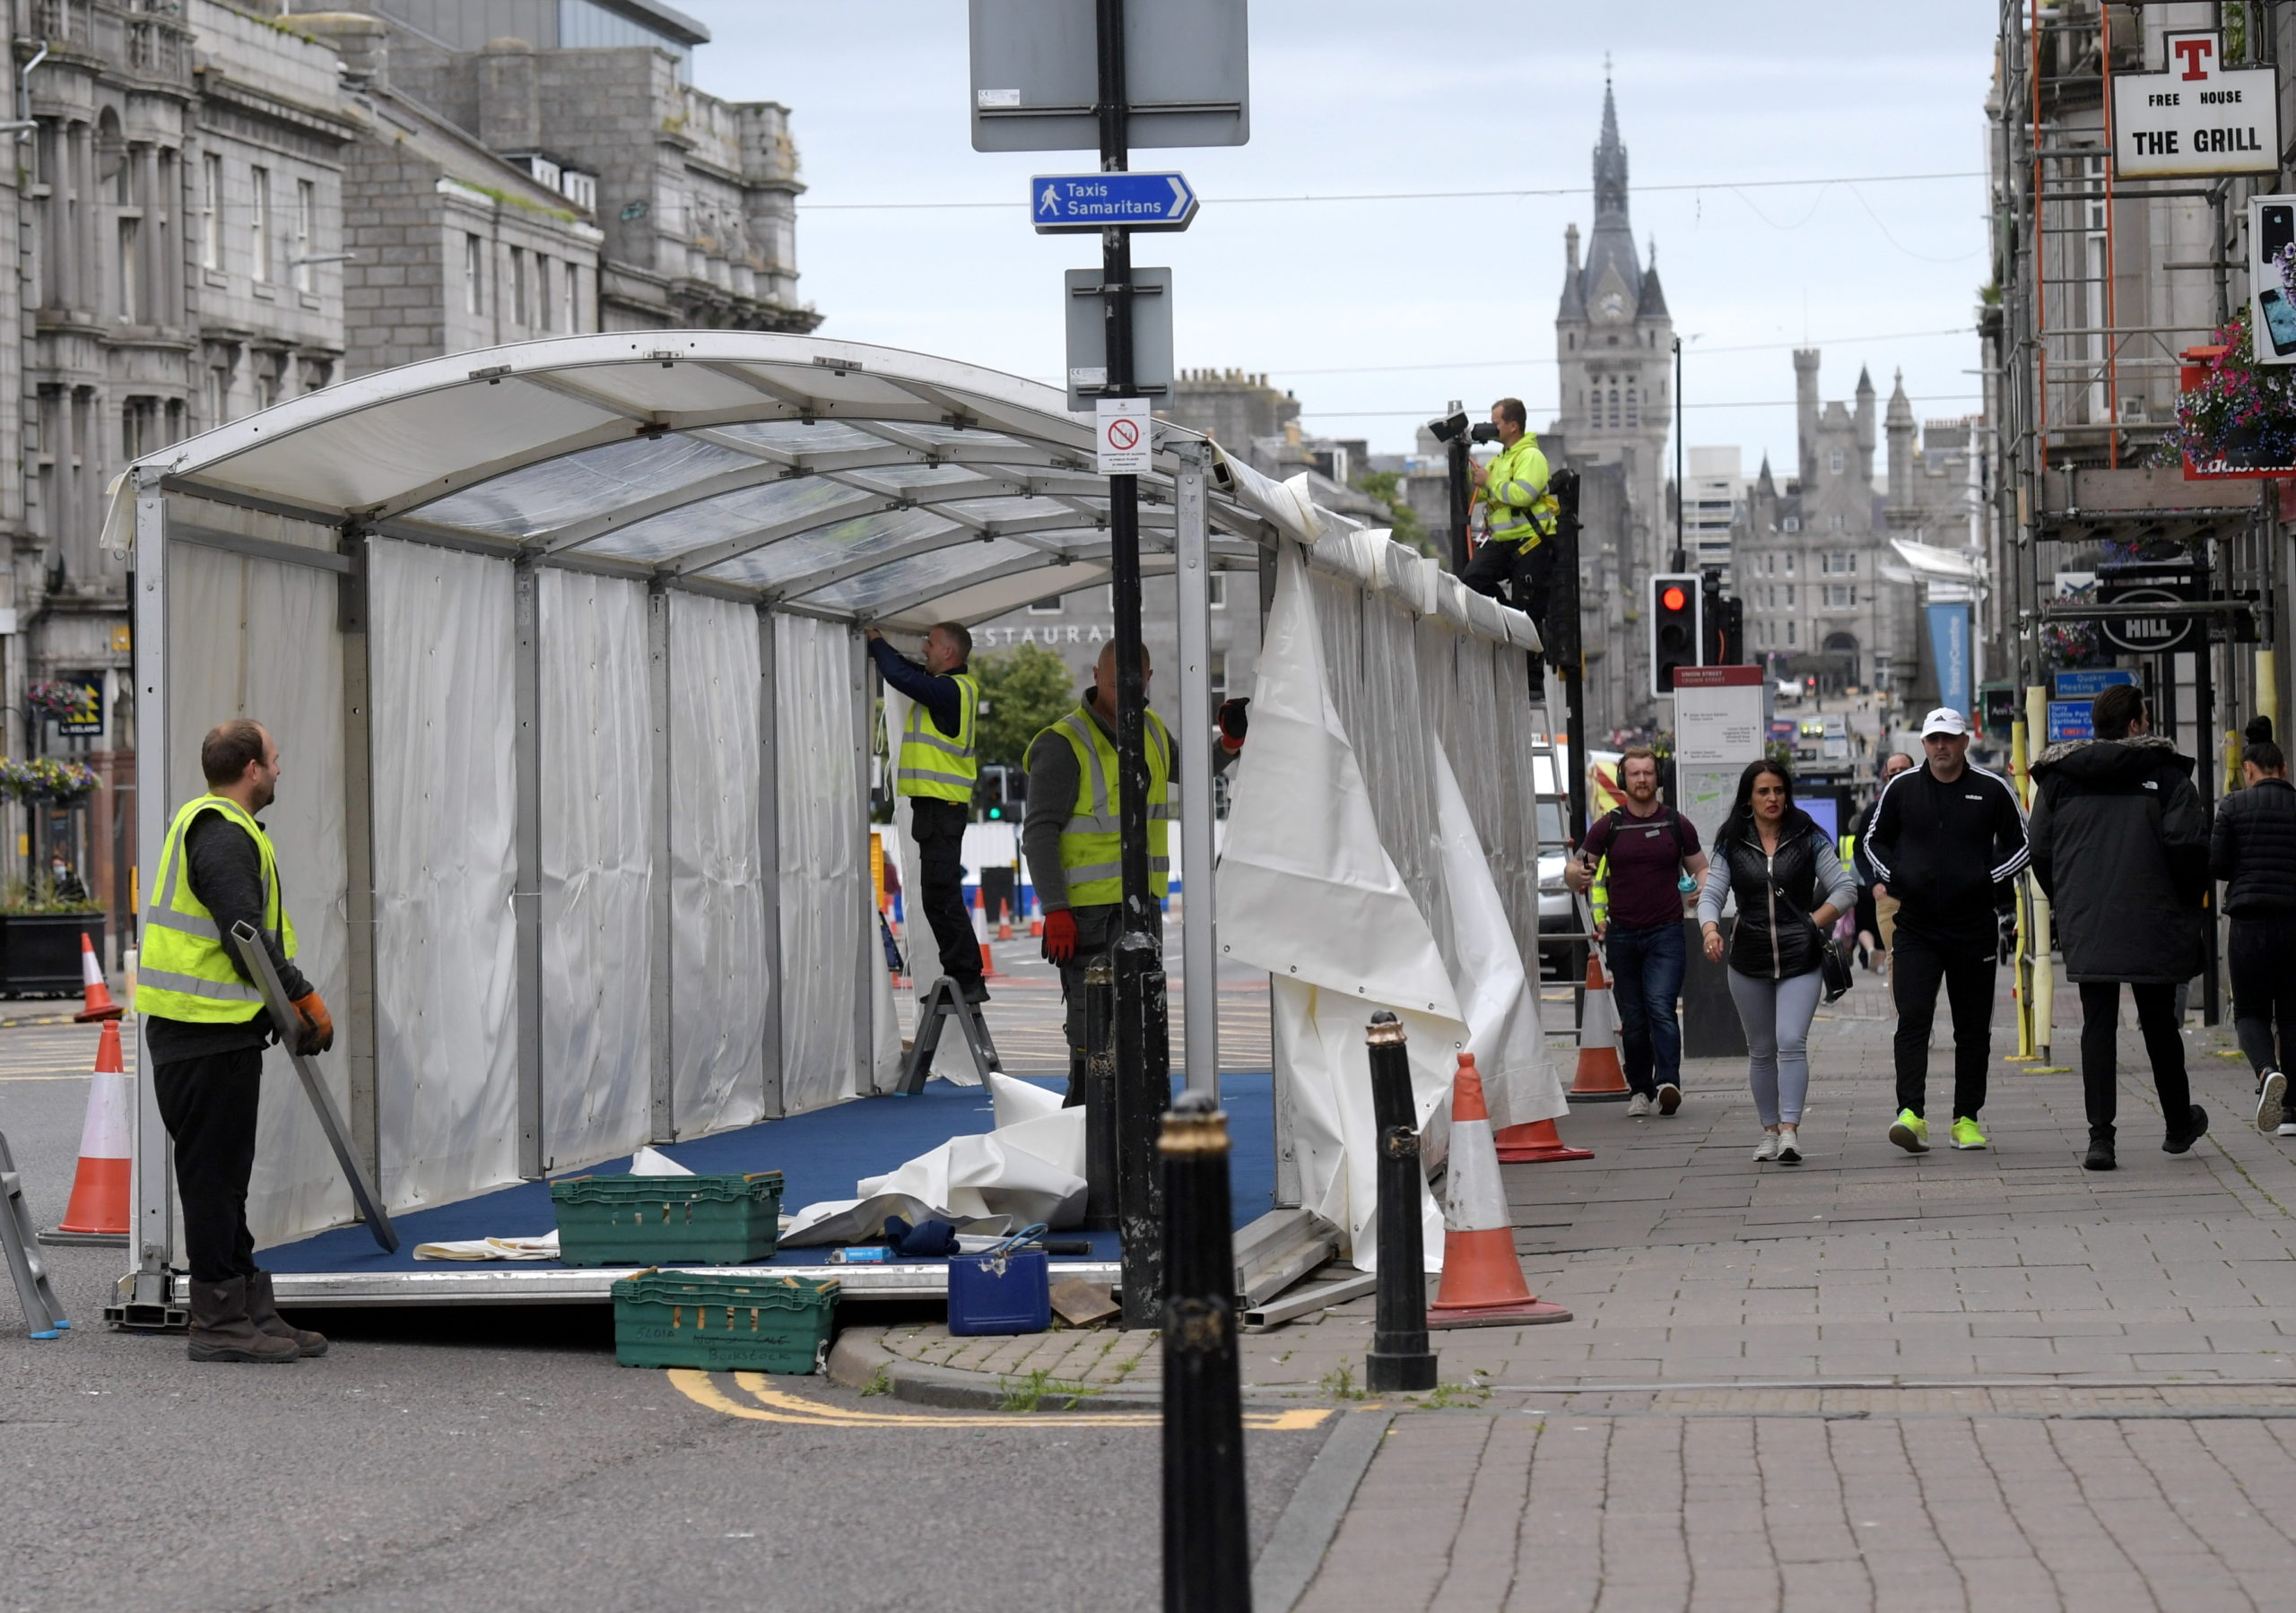 New structure being put up on Union Street. Coronavirus. Covid-19. 08/07/20 Picture by KATH FLANNERY